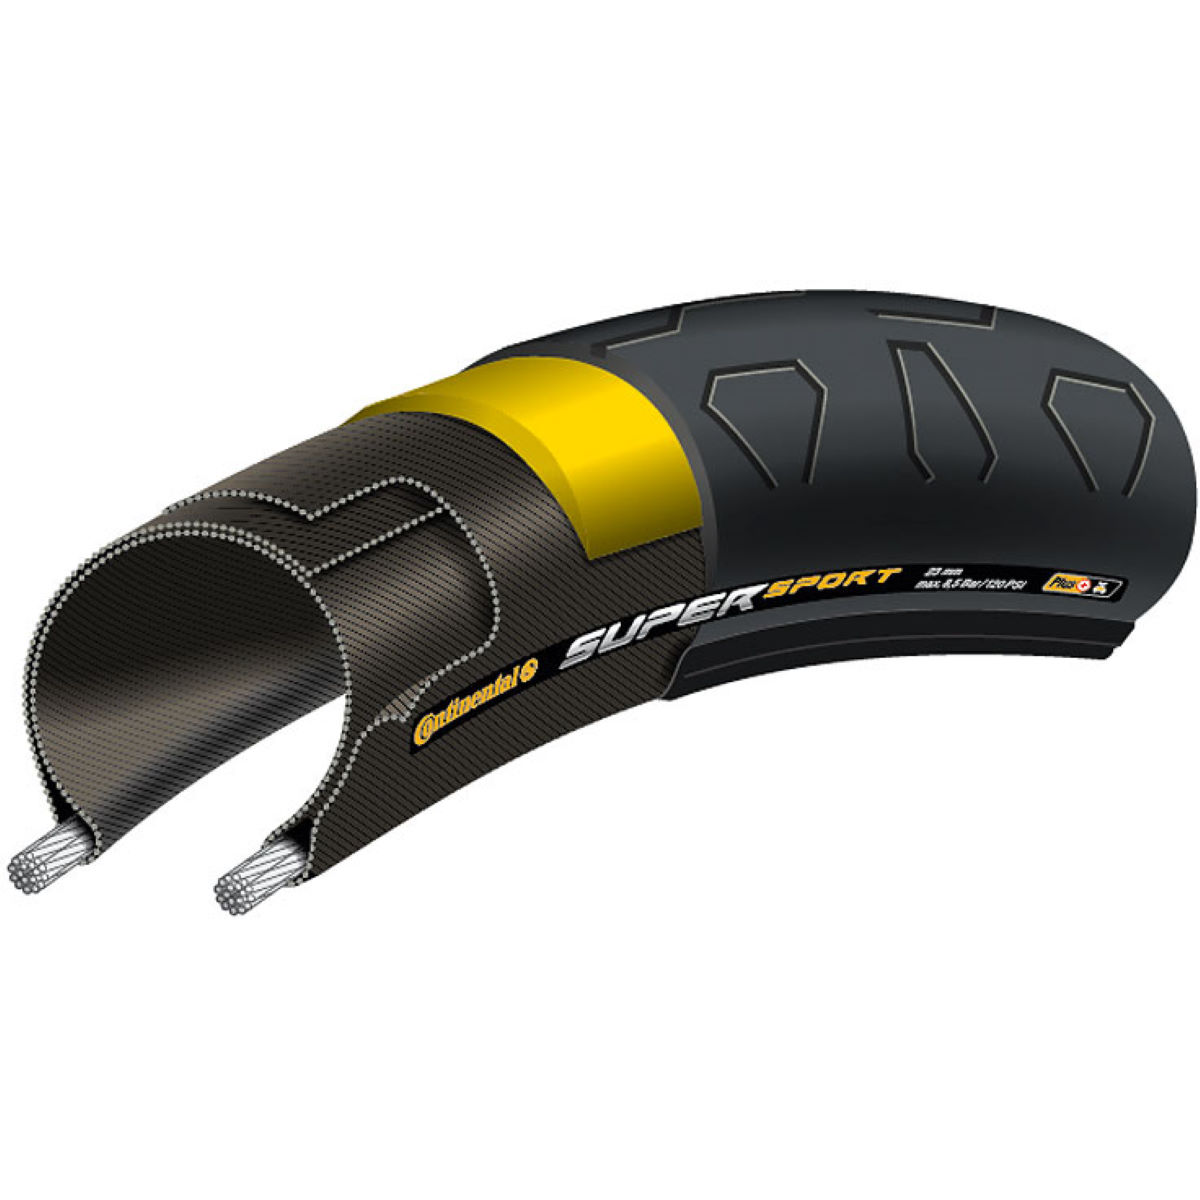 Cubierta plegable de carretera Continental SuperSport Plus - Cubiertas para carretera